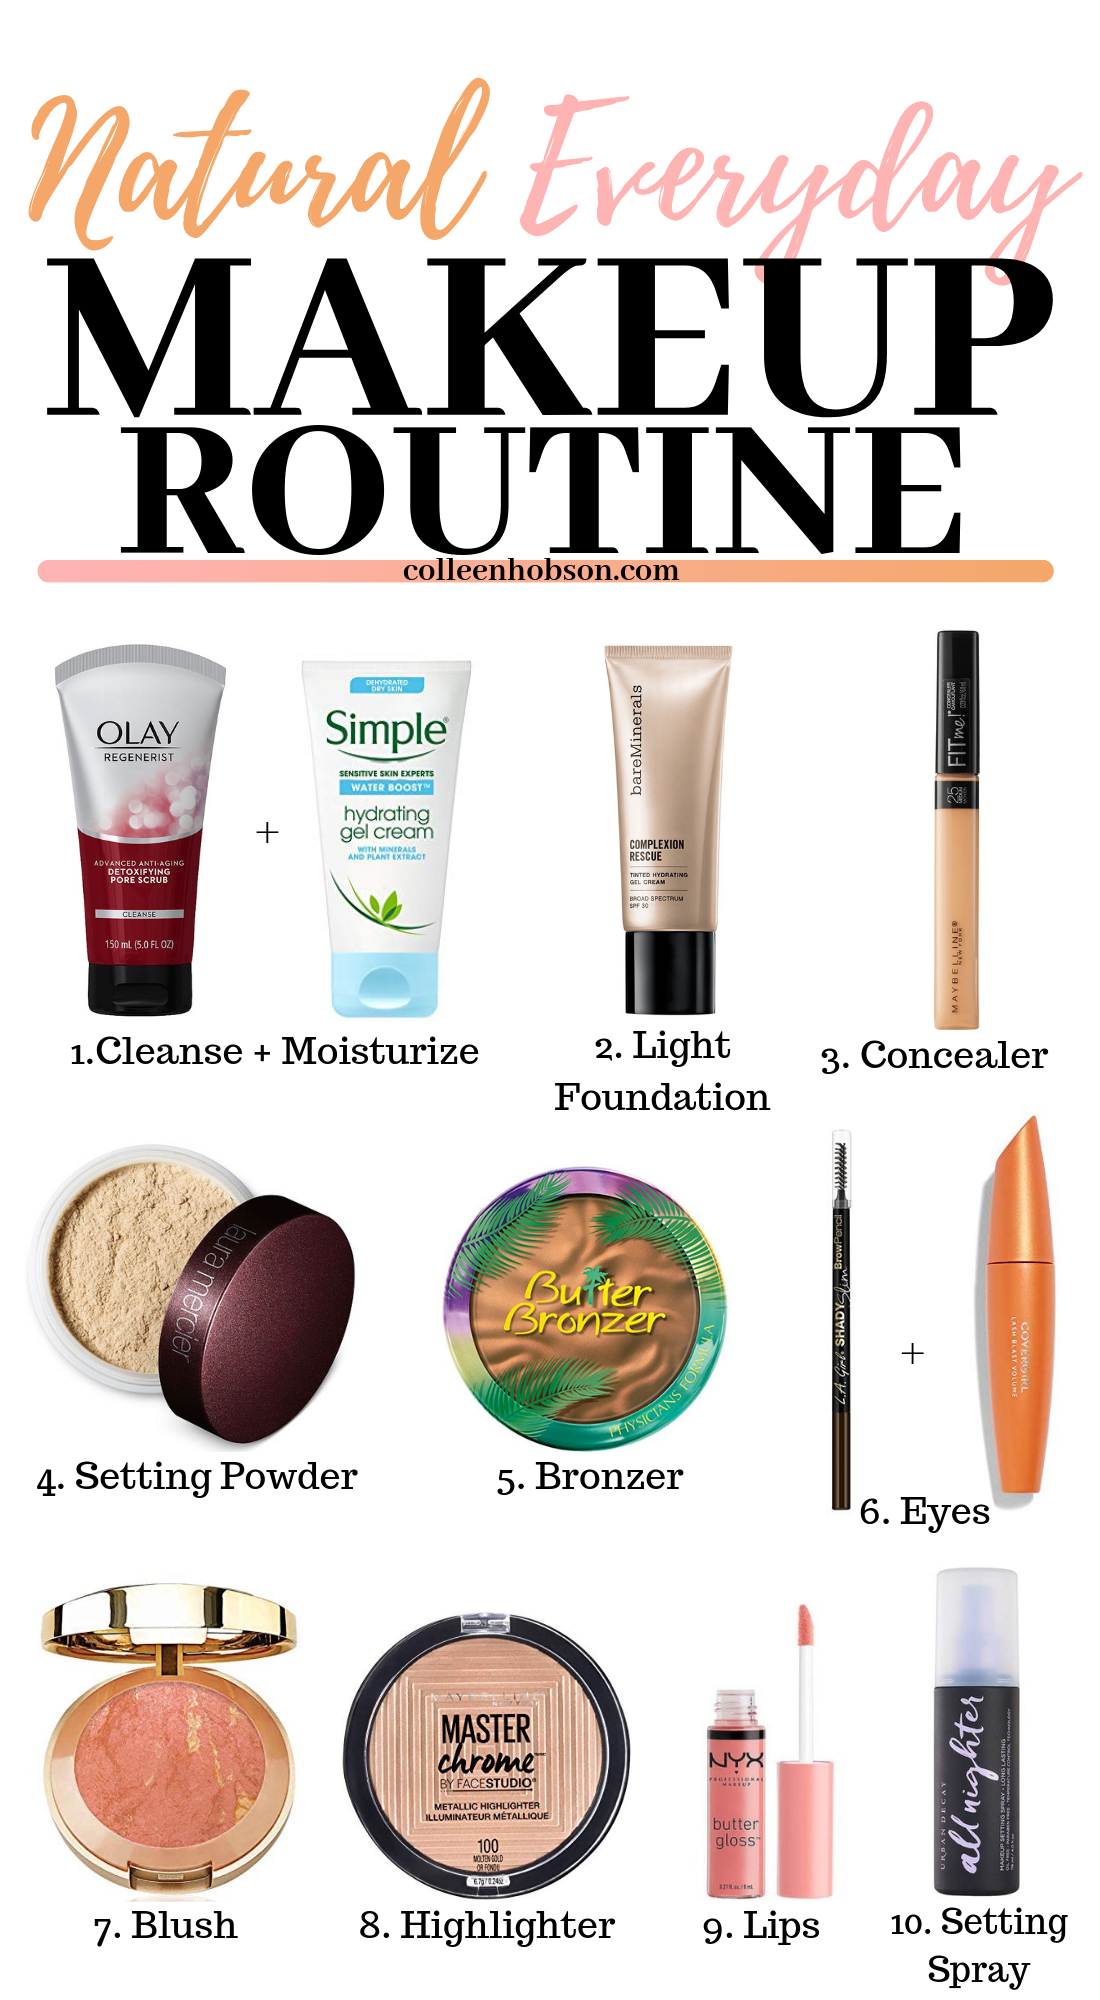 Natural Everyday Makeup Routine BeautyRoutineProducts